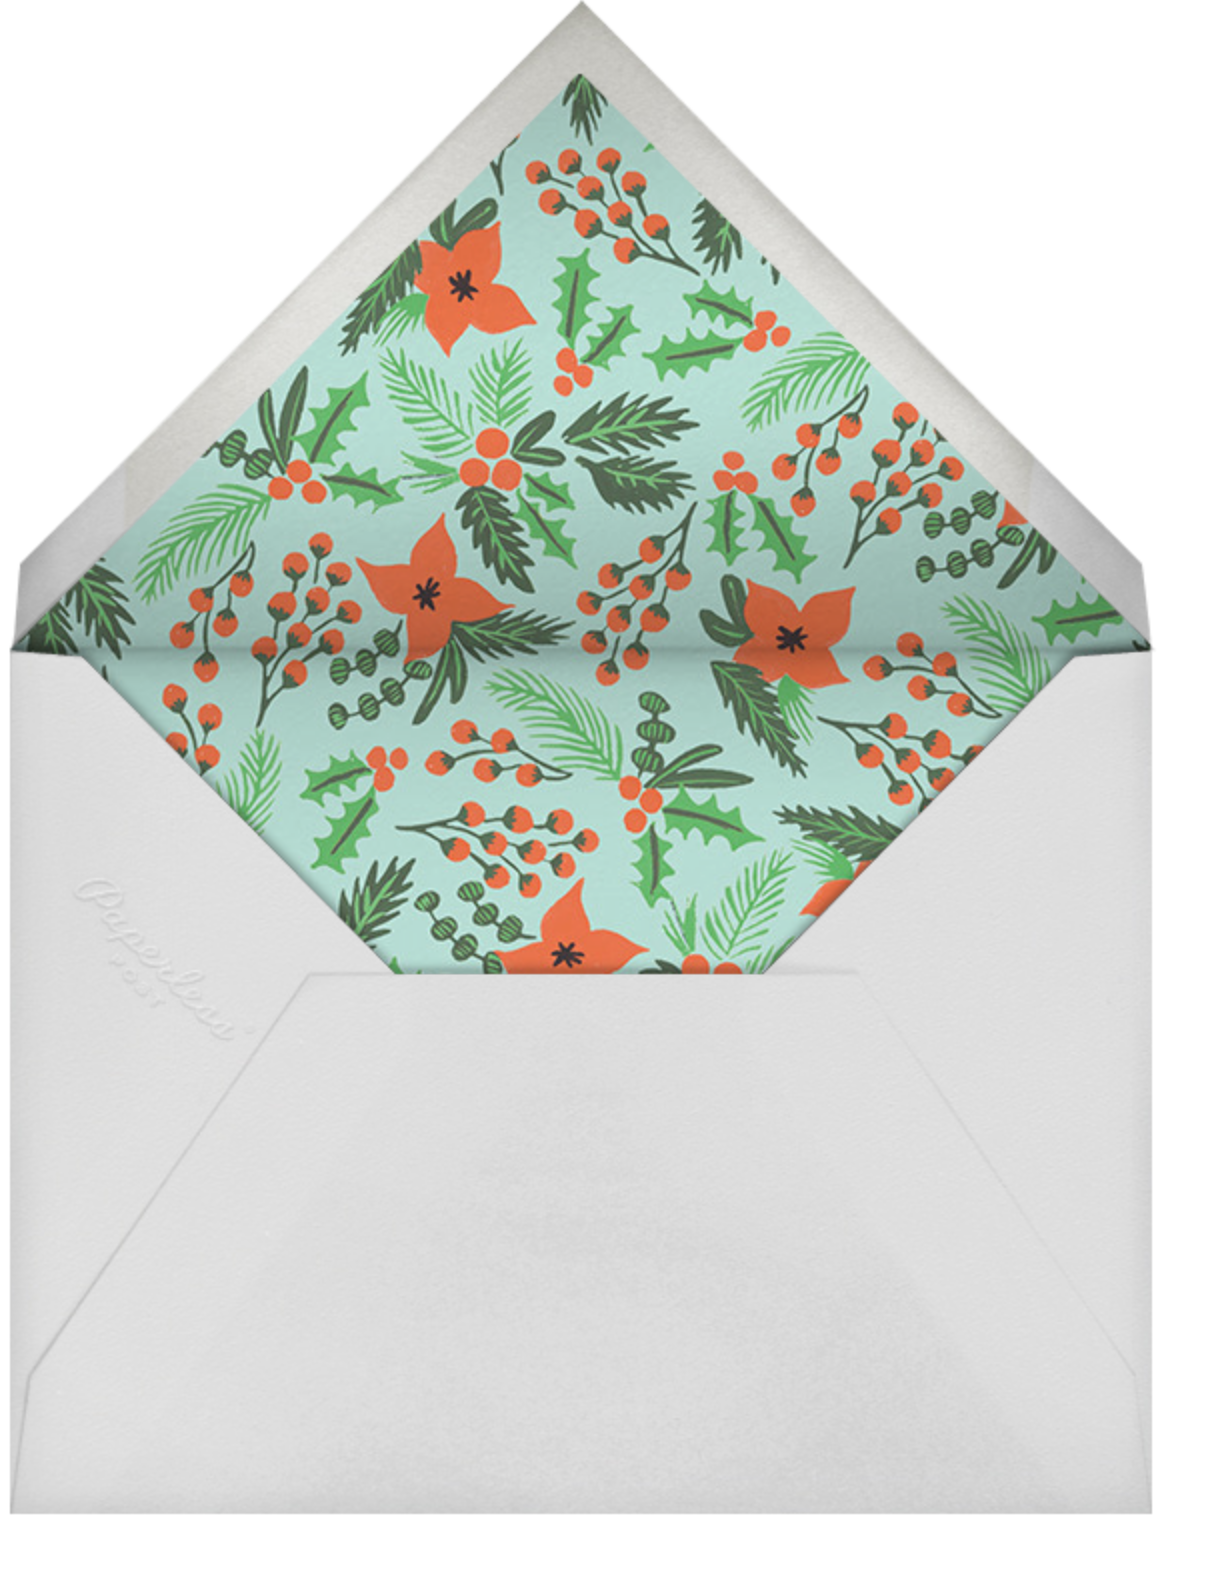 Wish You Were Here - Medium - Rifle Paper Co. - Christmas party - envelope back